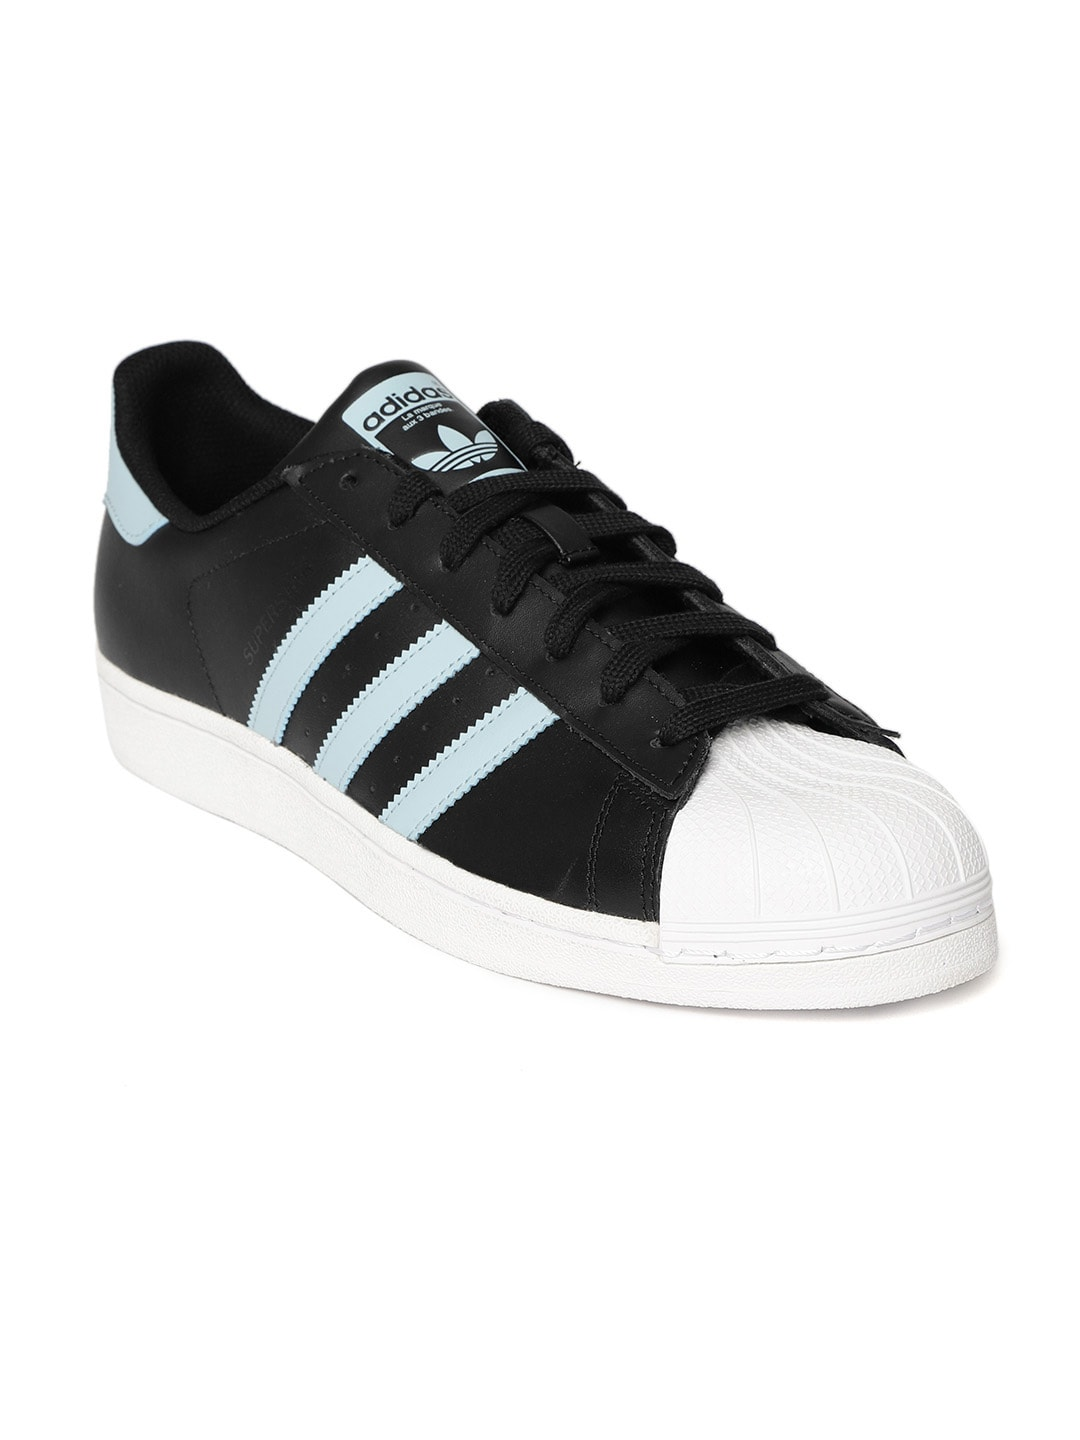 dfccdfc01 Adidas Football Shoes - Buy Adidas Football Shoes for Men Online in India